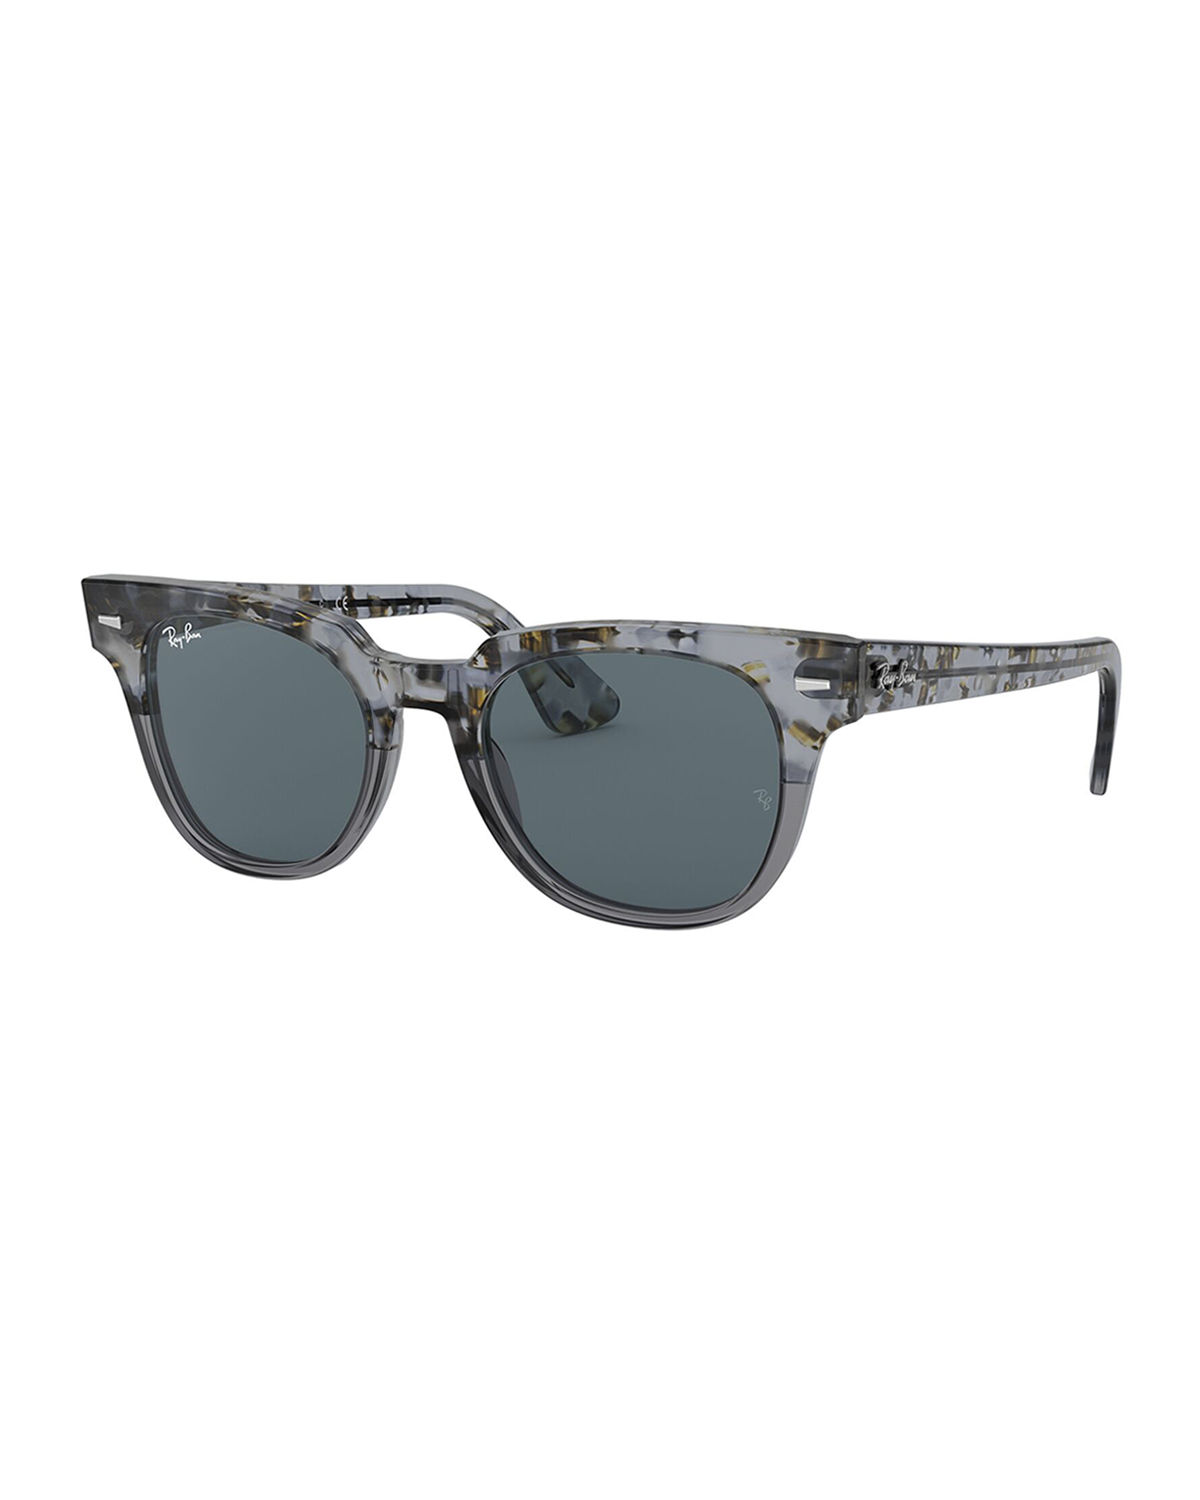 Ray Ban Sunglasses SQUARE ACETATE SUNGLASSES